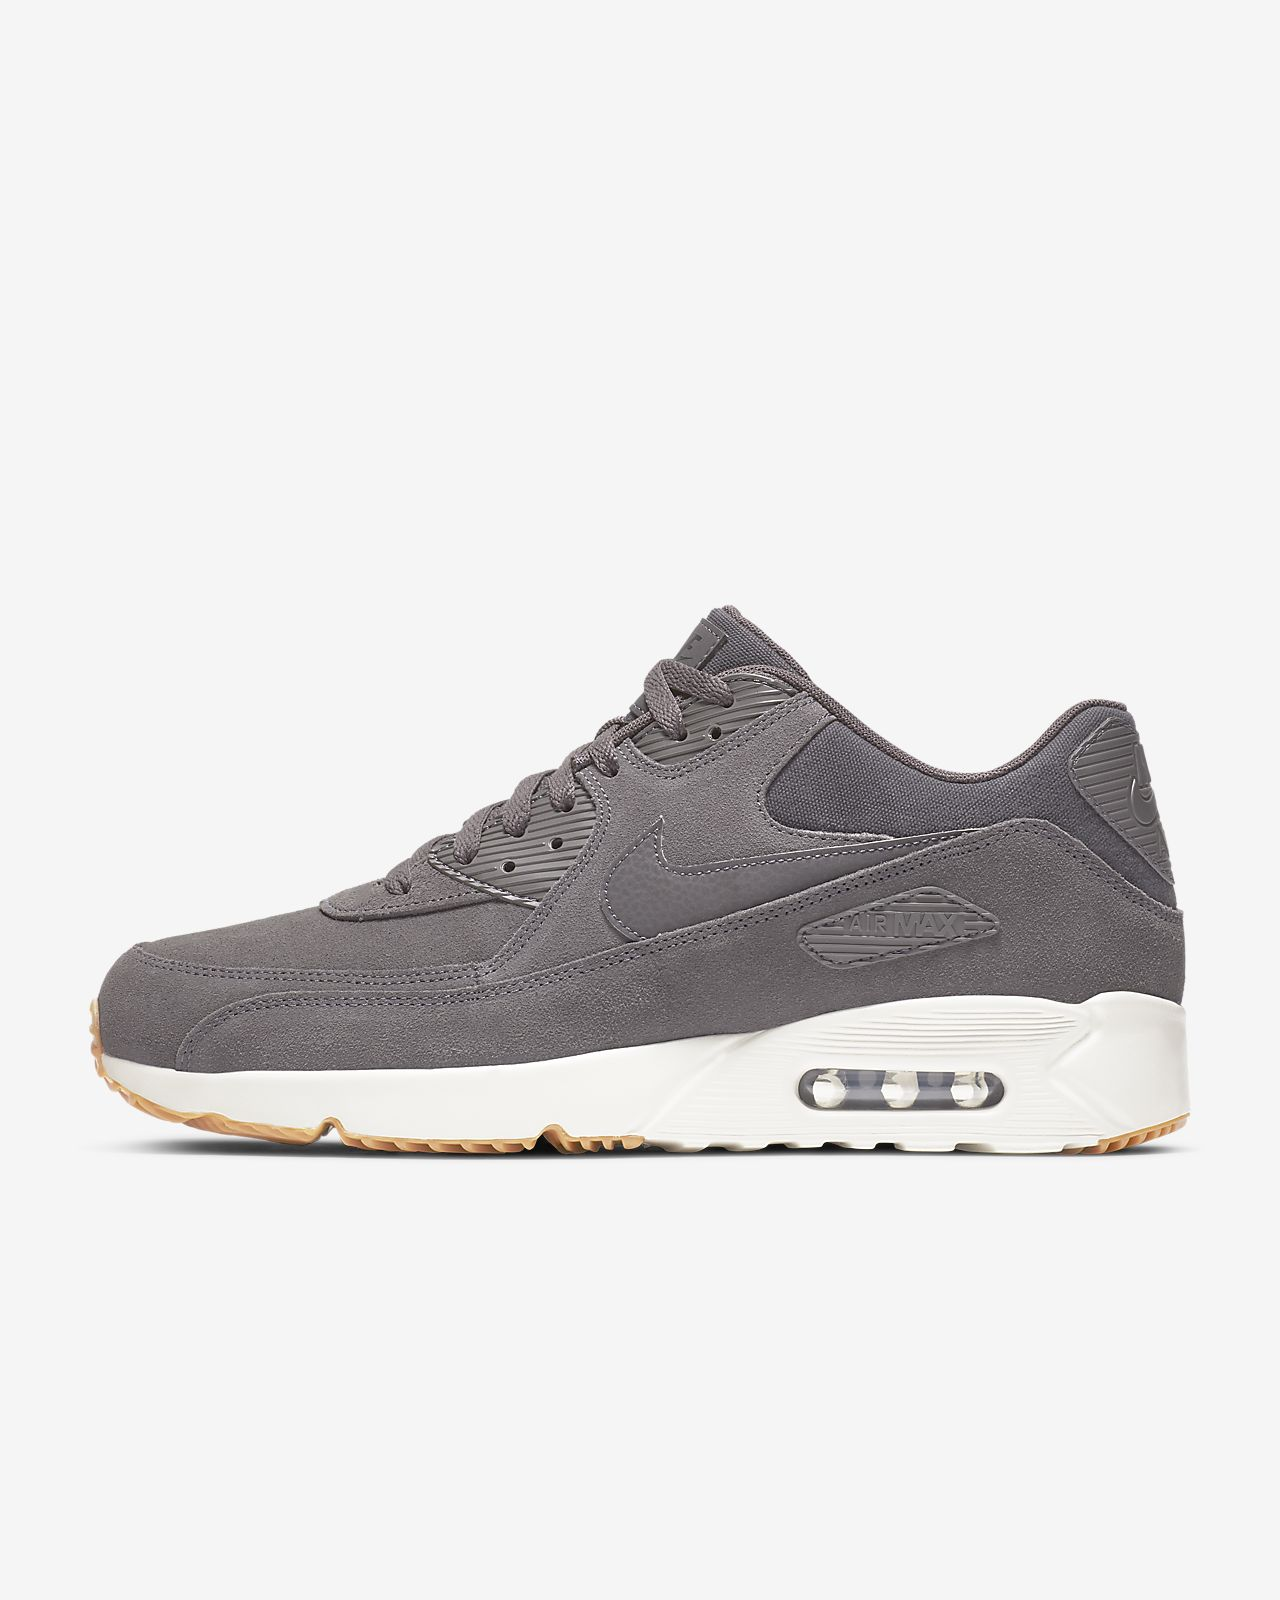 wholesale dealer 4fc56 51271 ... Nike Air Max 90 Ultra 2.0 Men s Shoe